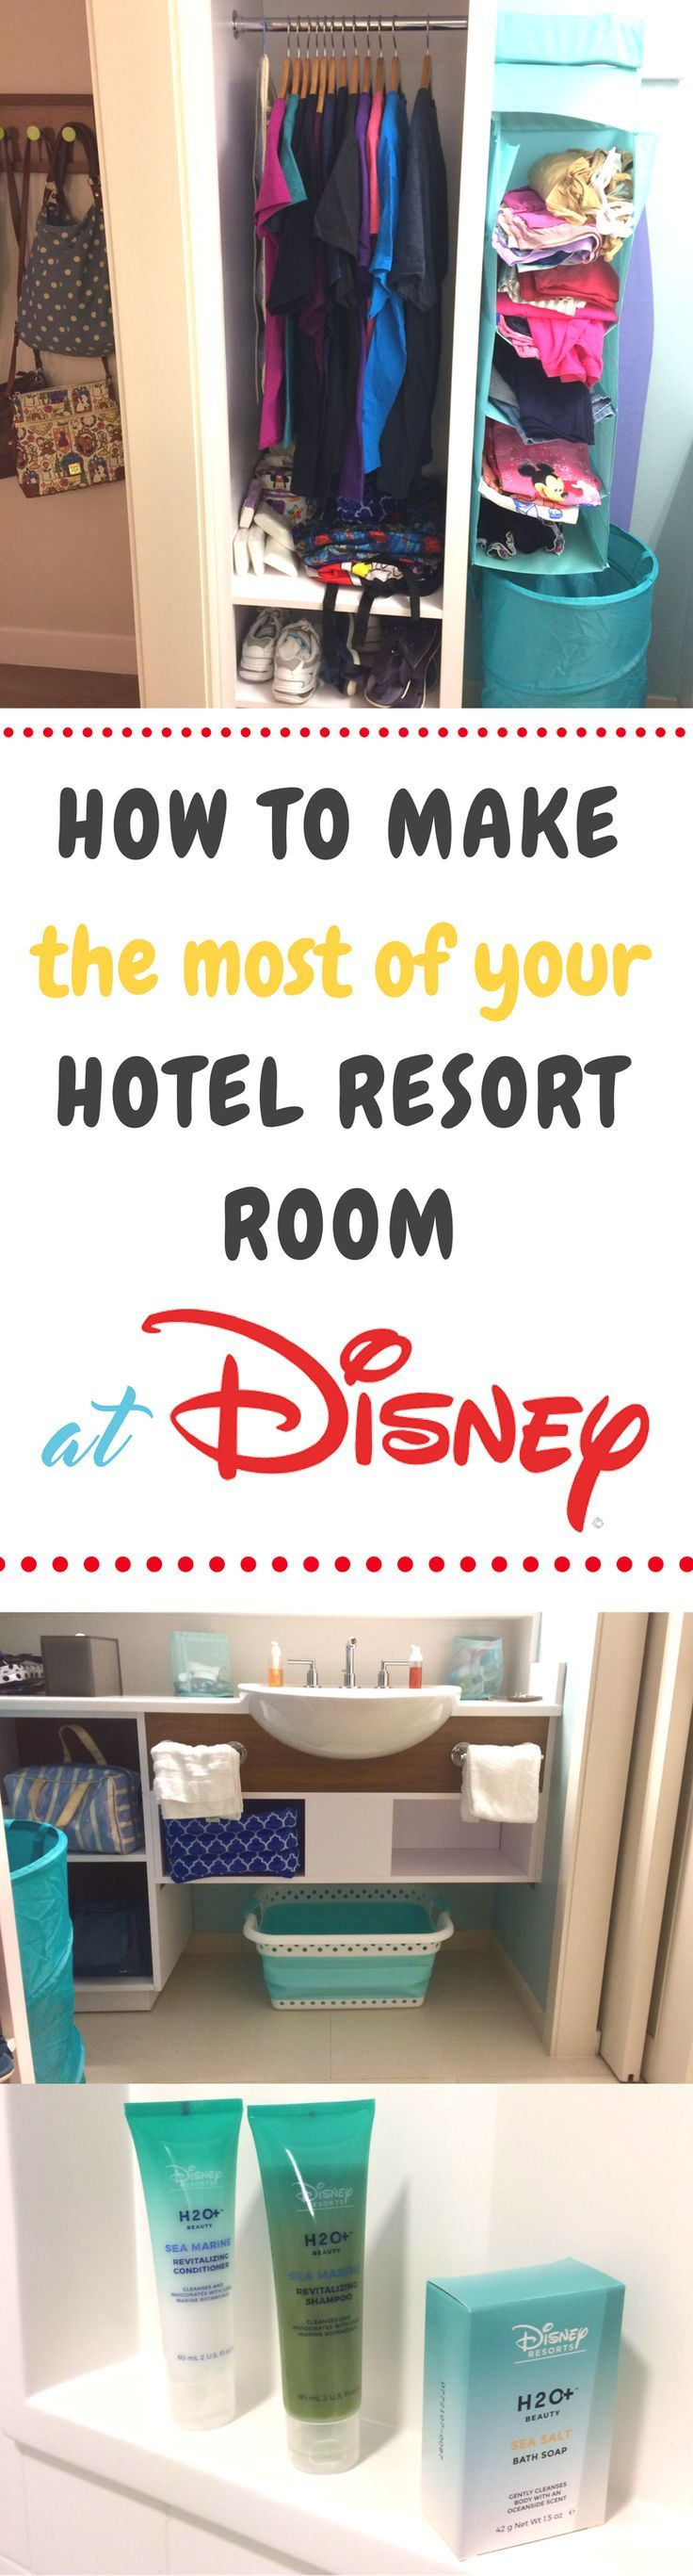 How to Make the Most of Your Hotel Resort Room at Disney. family travel